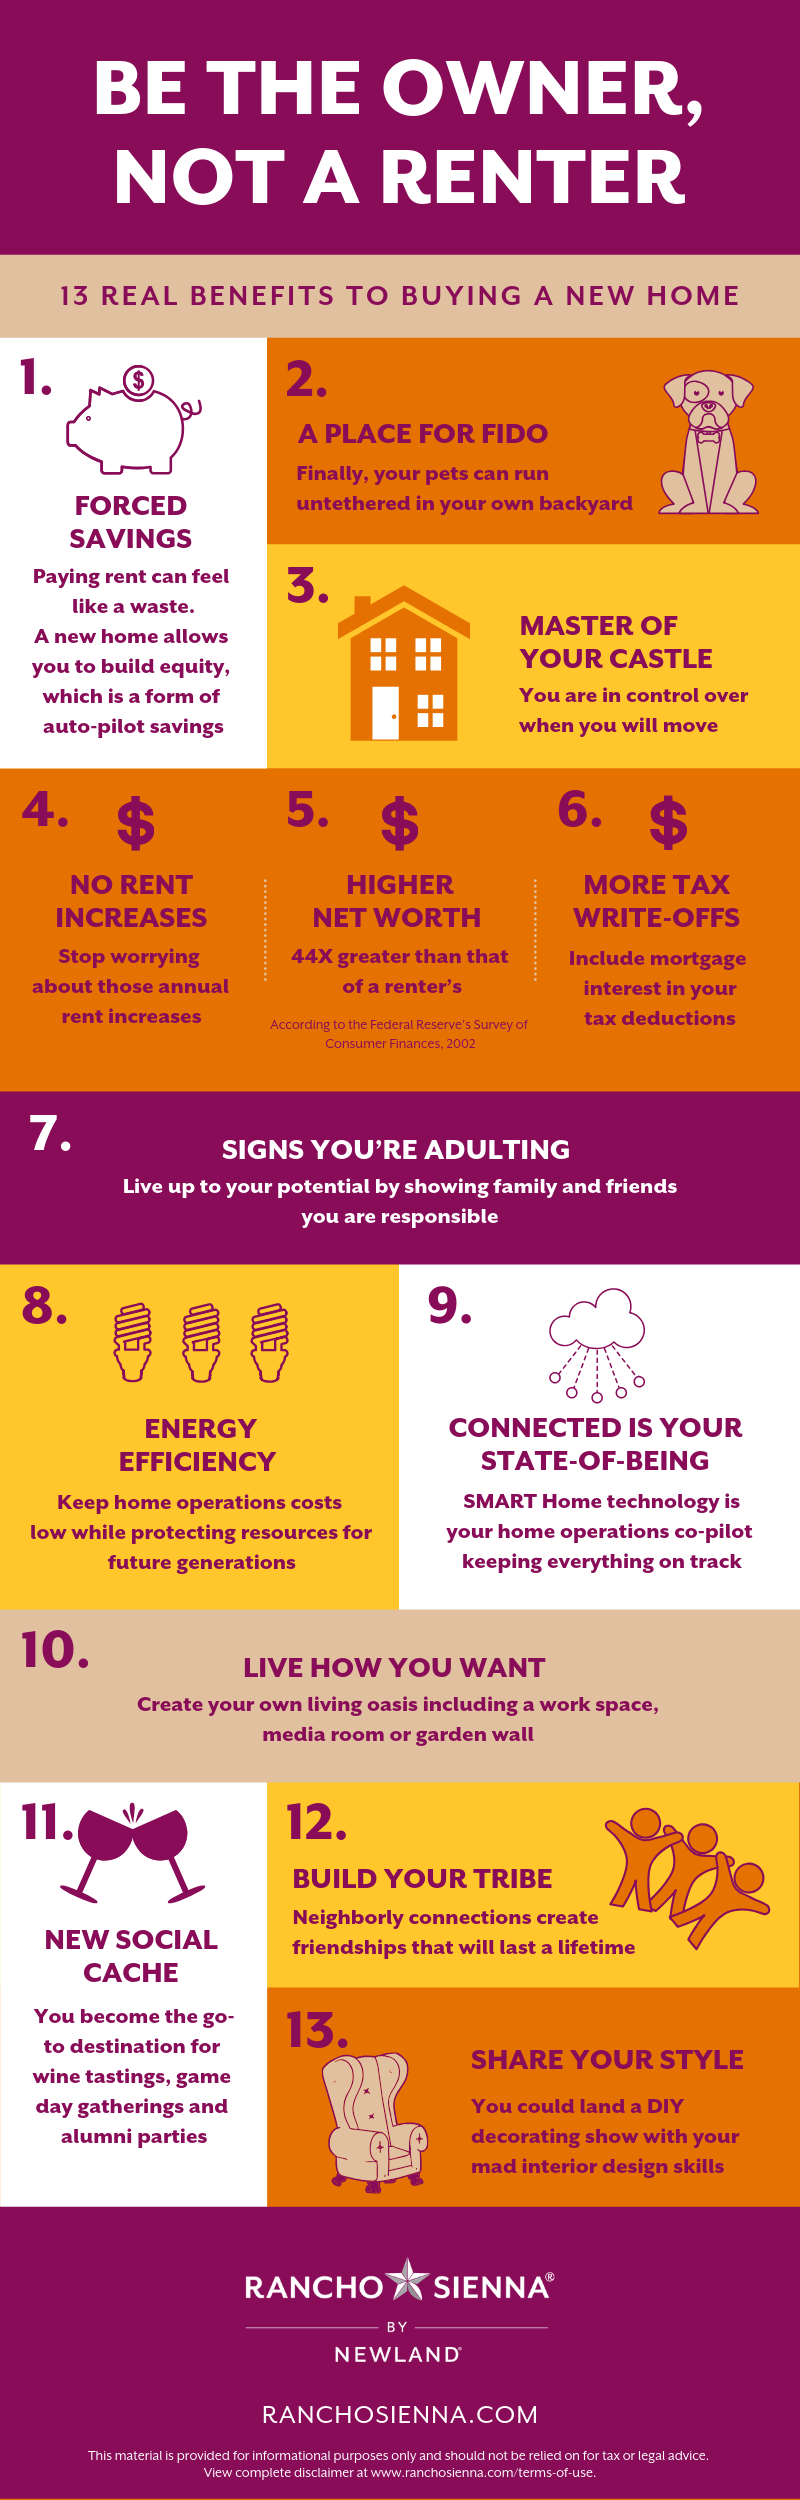 Infographic: 13 reasons to own a new home instead of rent